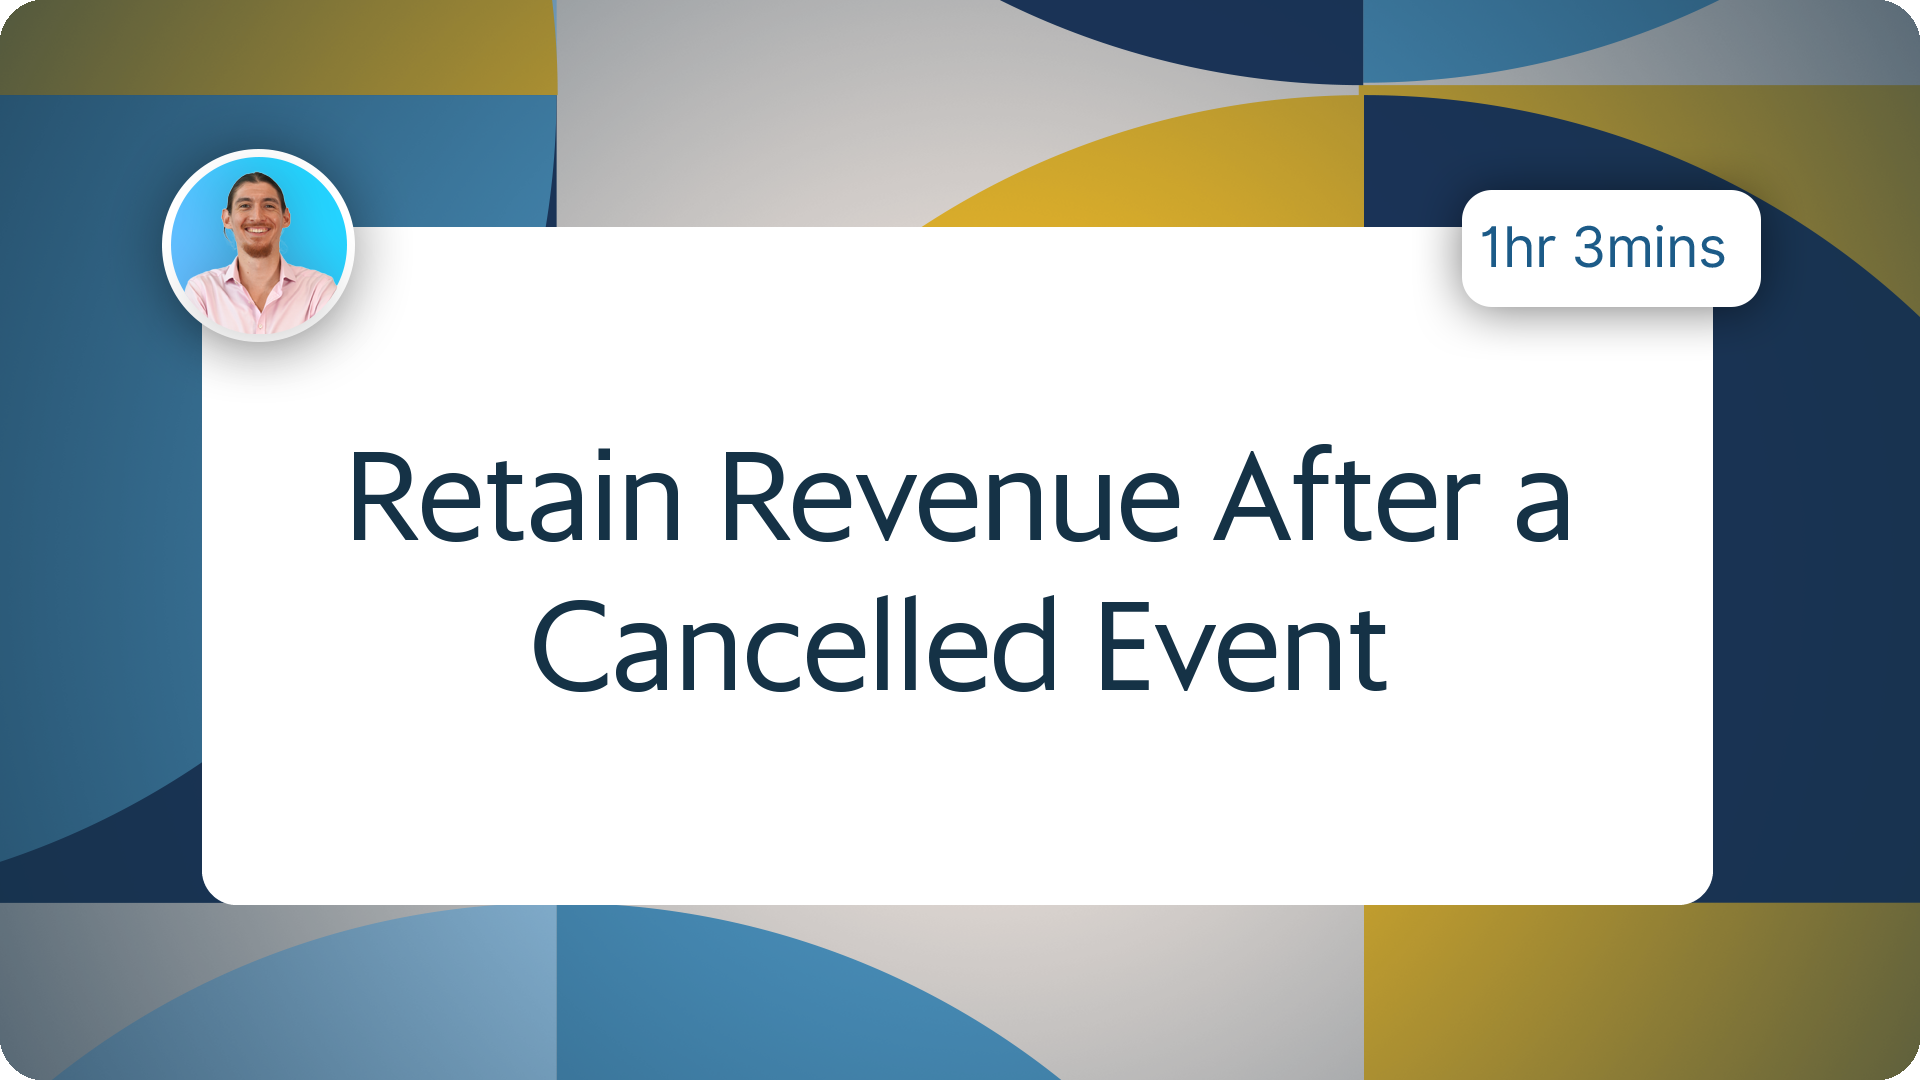 Retain Revenue After a Cancelled Event